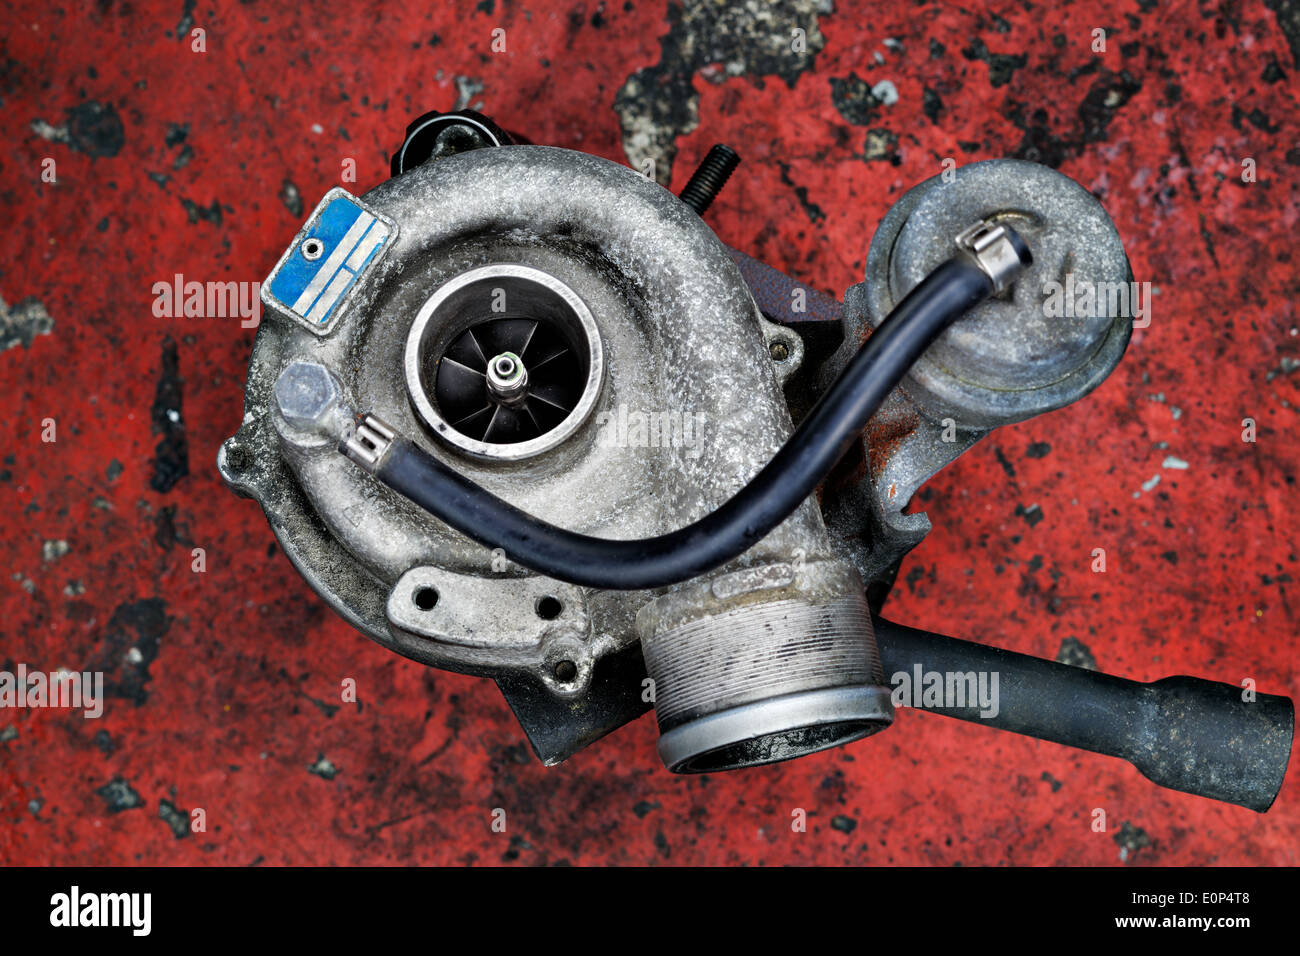 Old worn out turbocharger of a turbo diesel engine on a red background - Stock Image